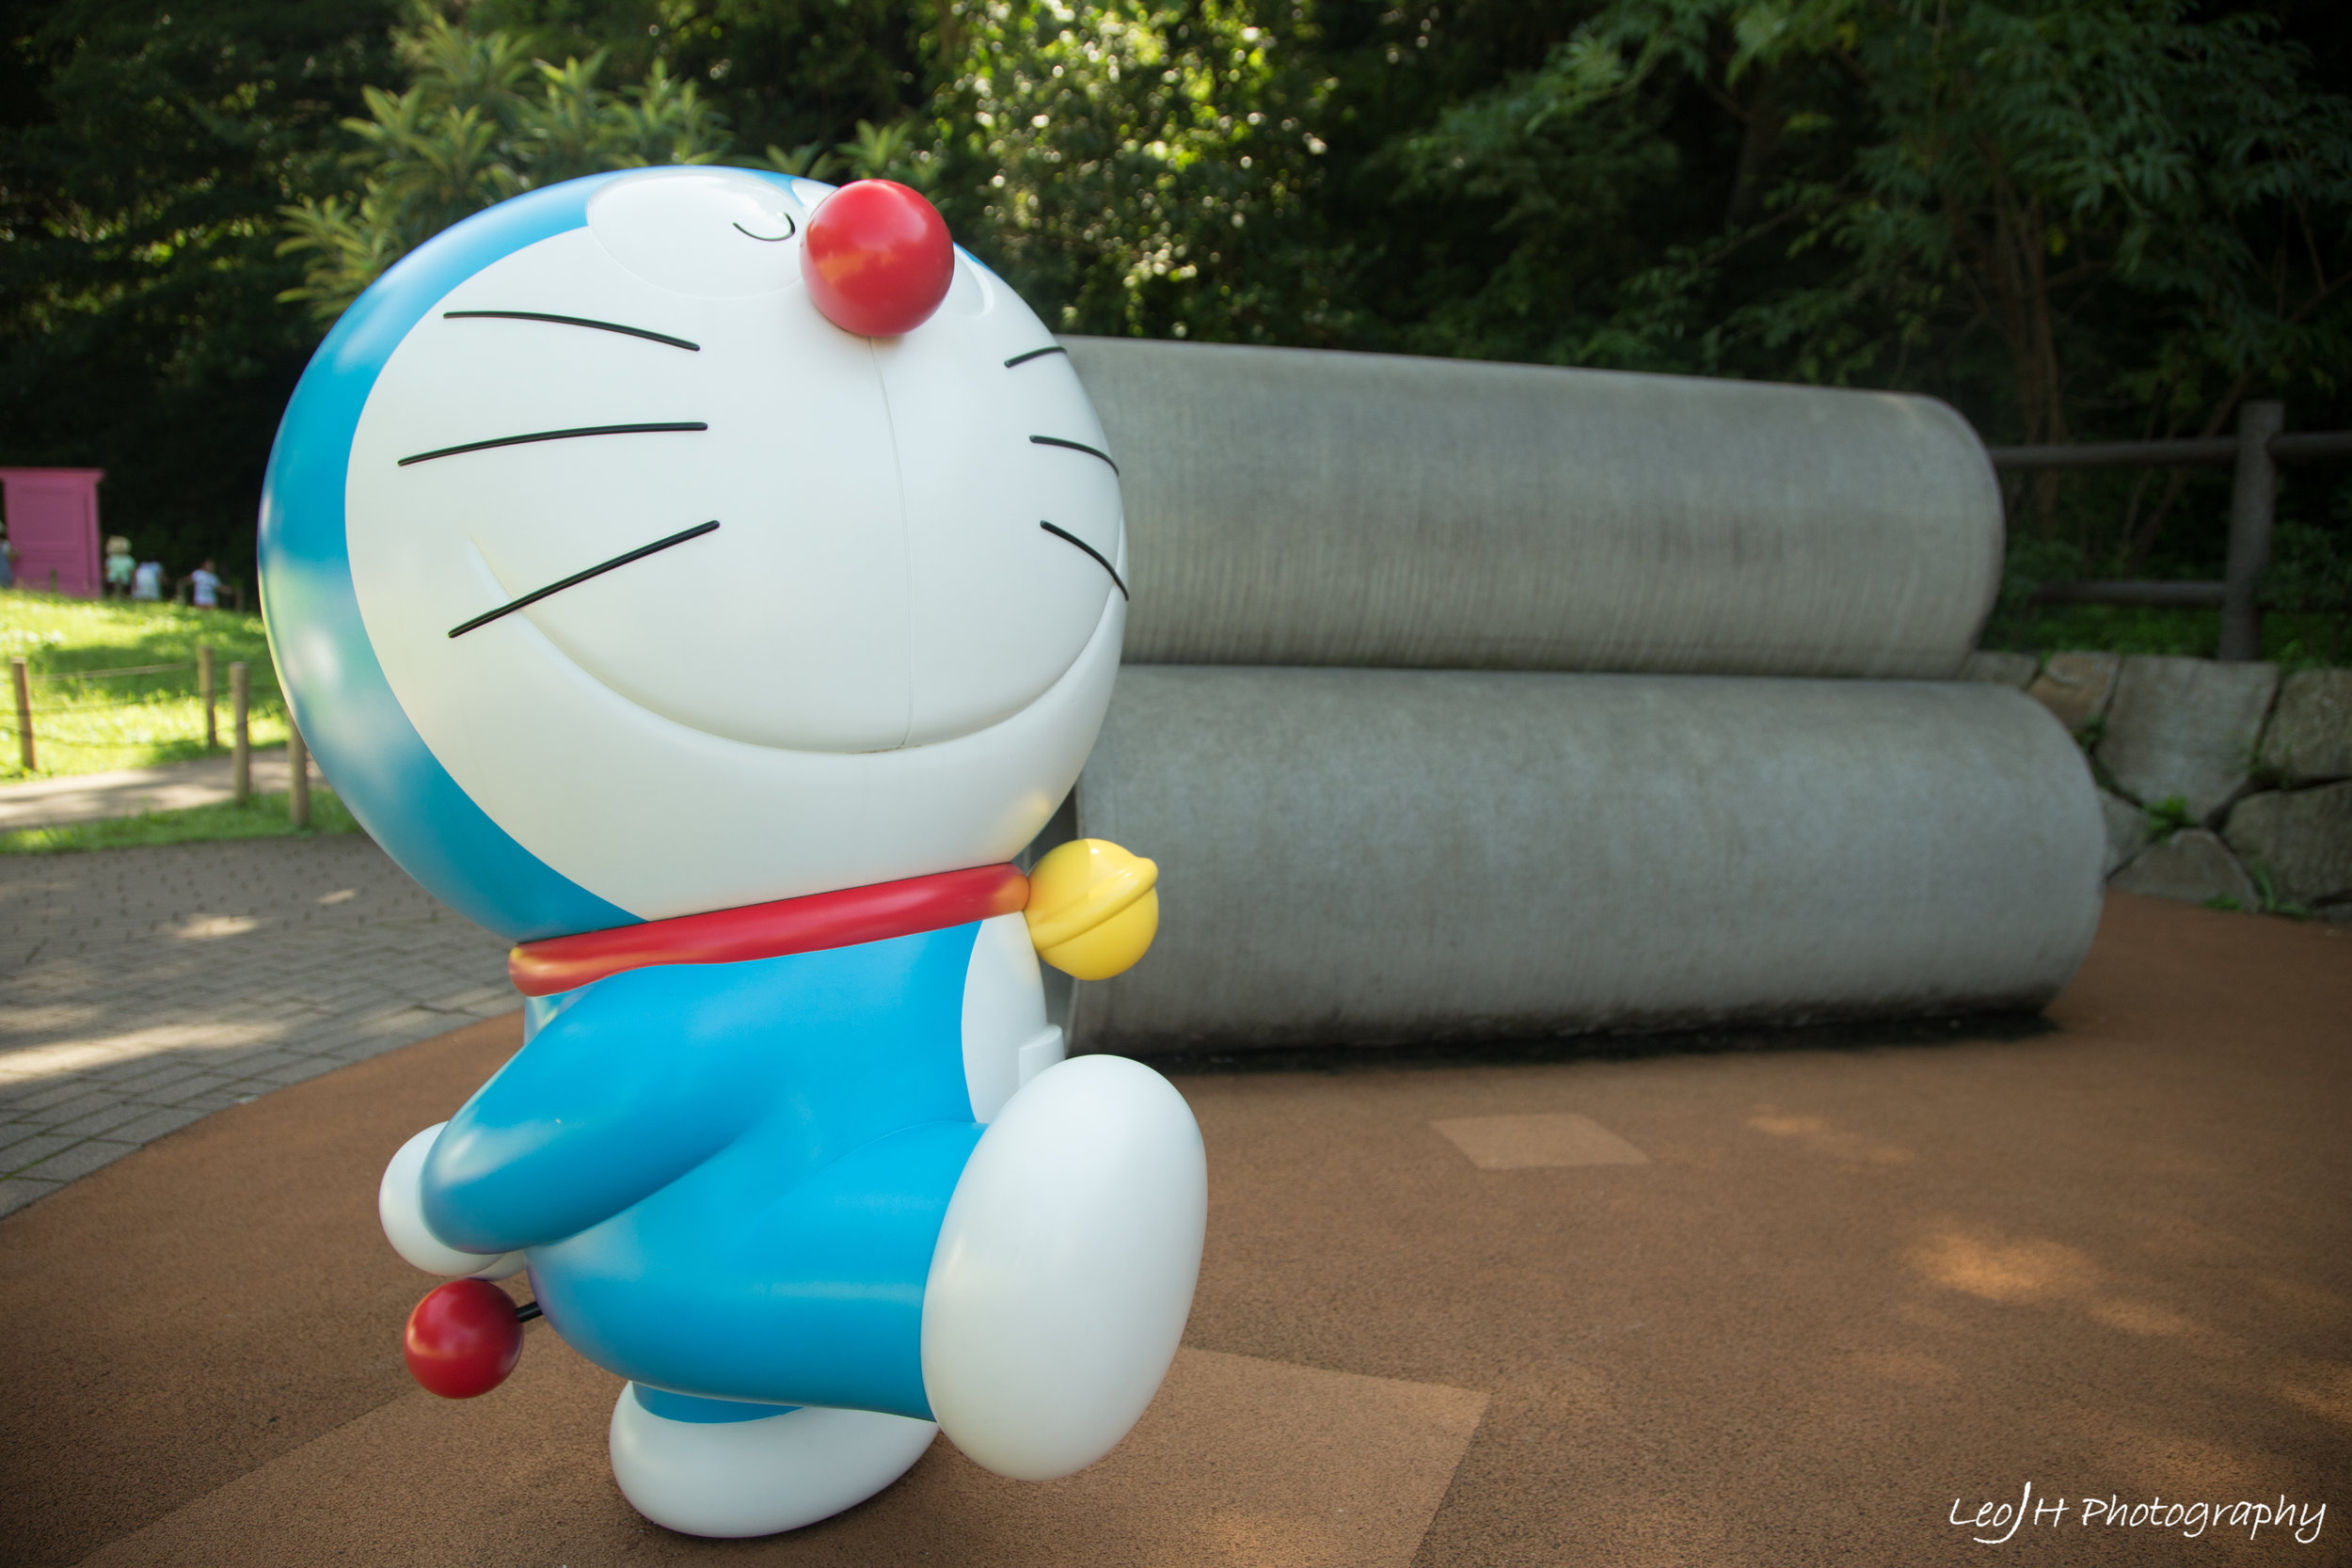 The rare occasion that the playground was empty. Doraemon's nose looks strangely too big